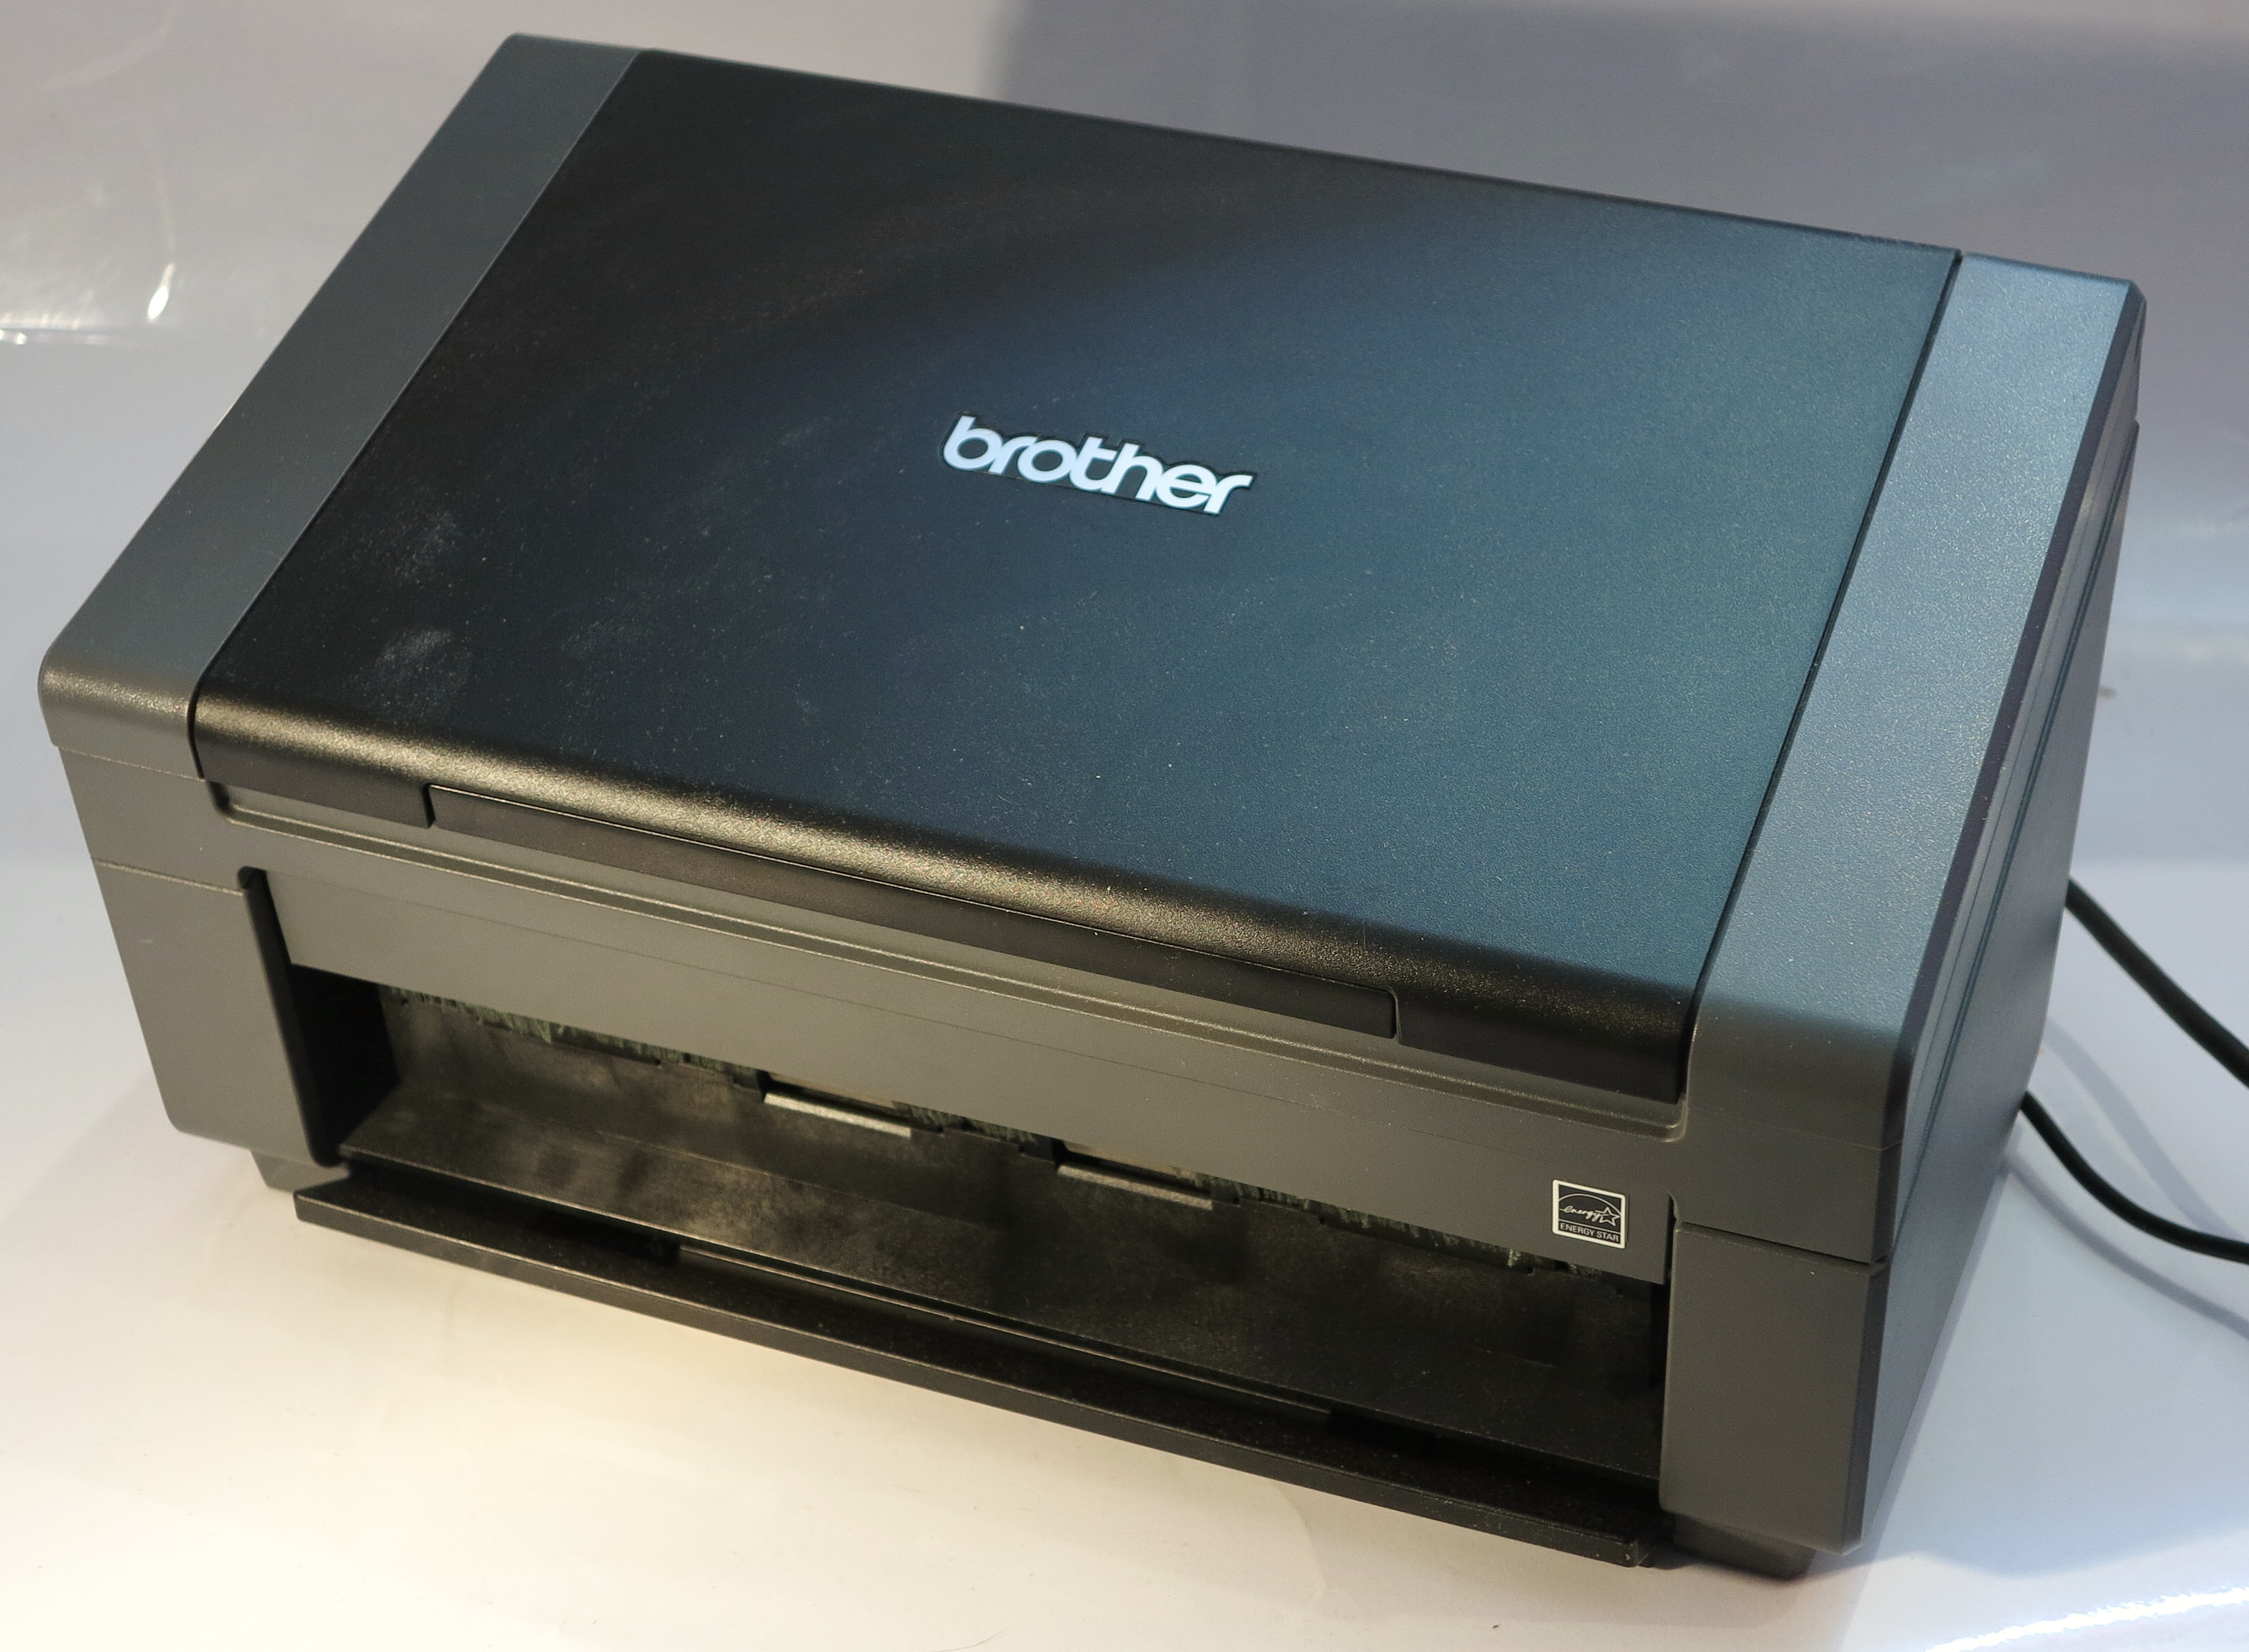 Brother PDS-6000 high-speed document scanner